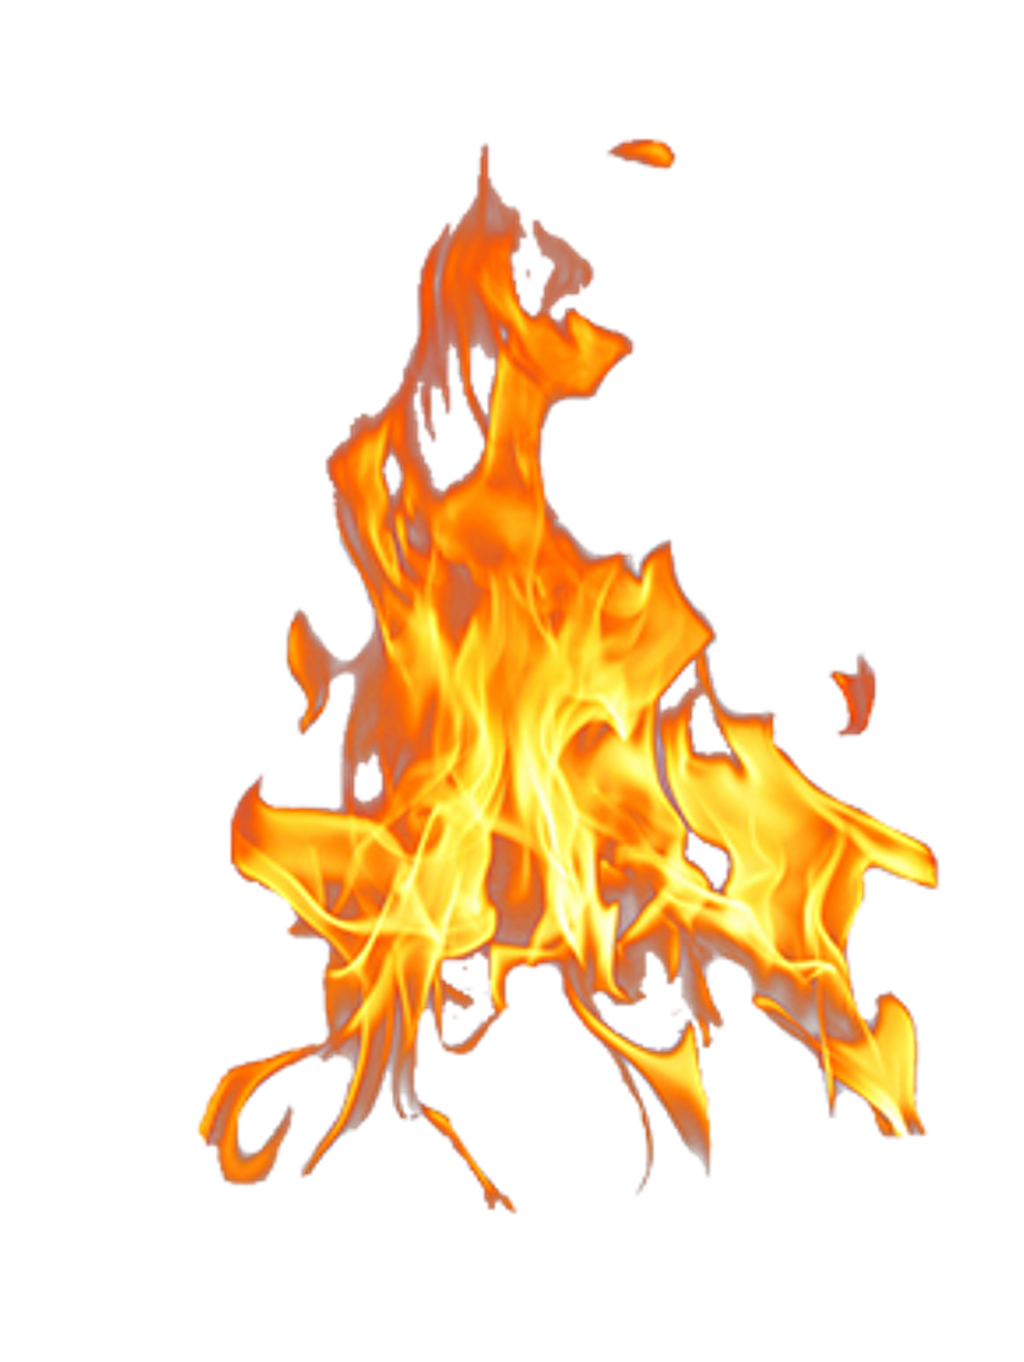 Image Transparent Fire by Lourdes Javier Photography Flame.